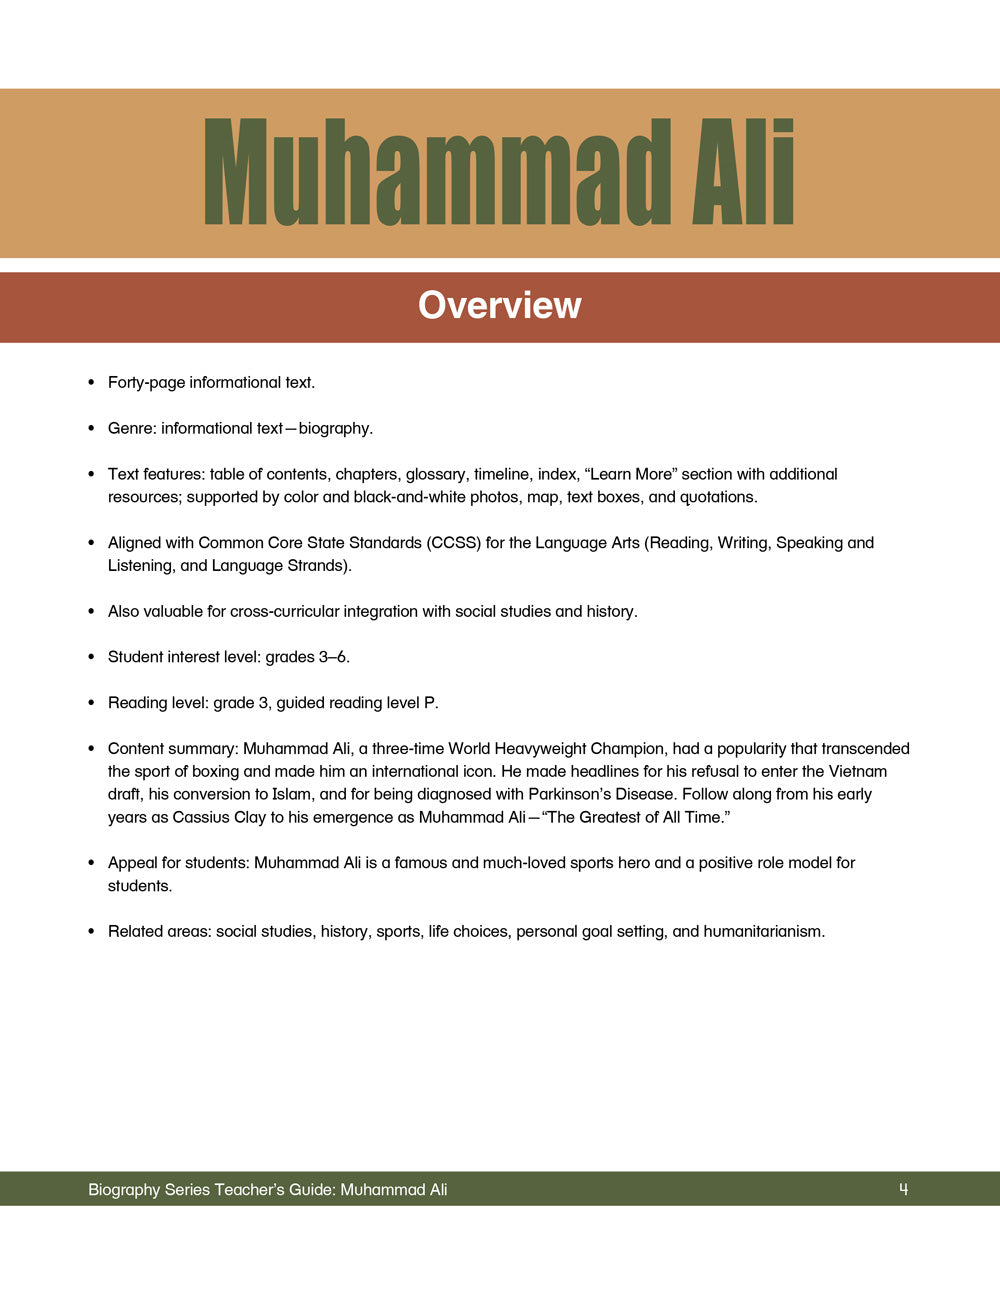 Muhammad Ali Teacher's Guide